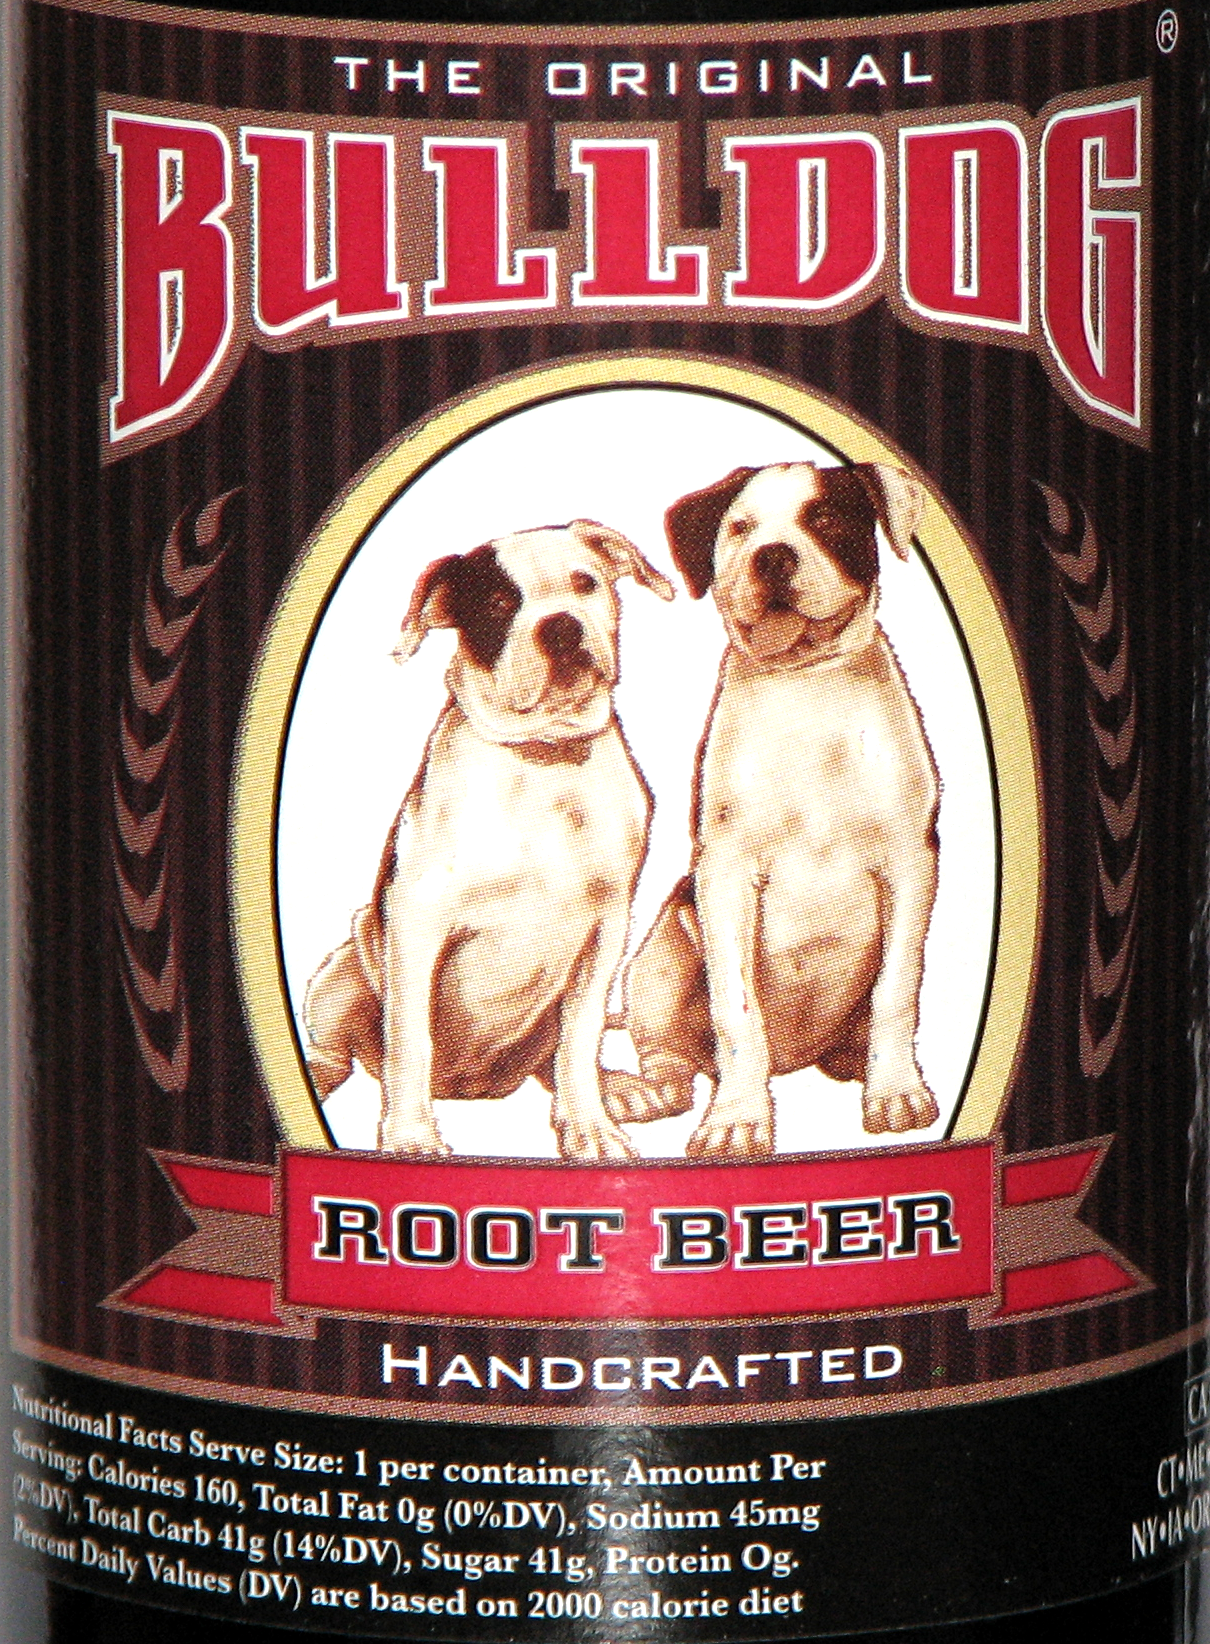 Bulldog Root Beer Label Unleash The Taste The Original Bulldog